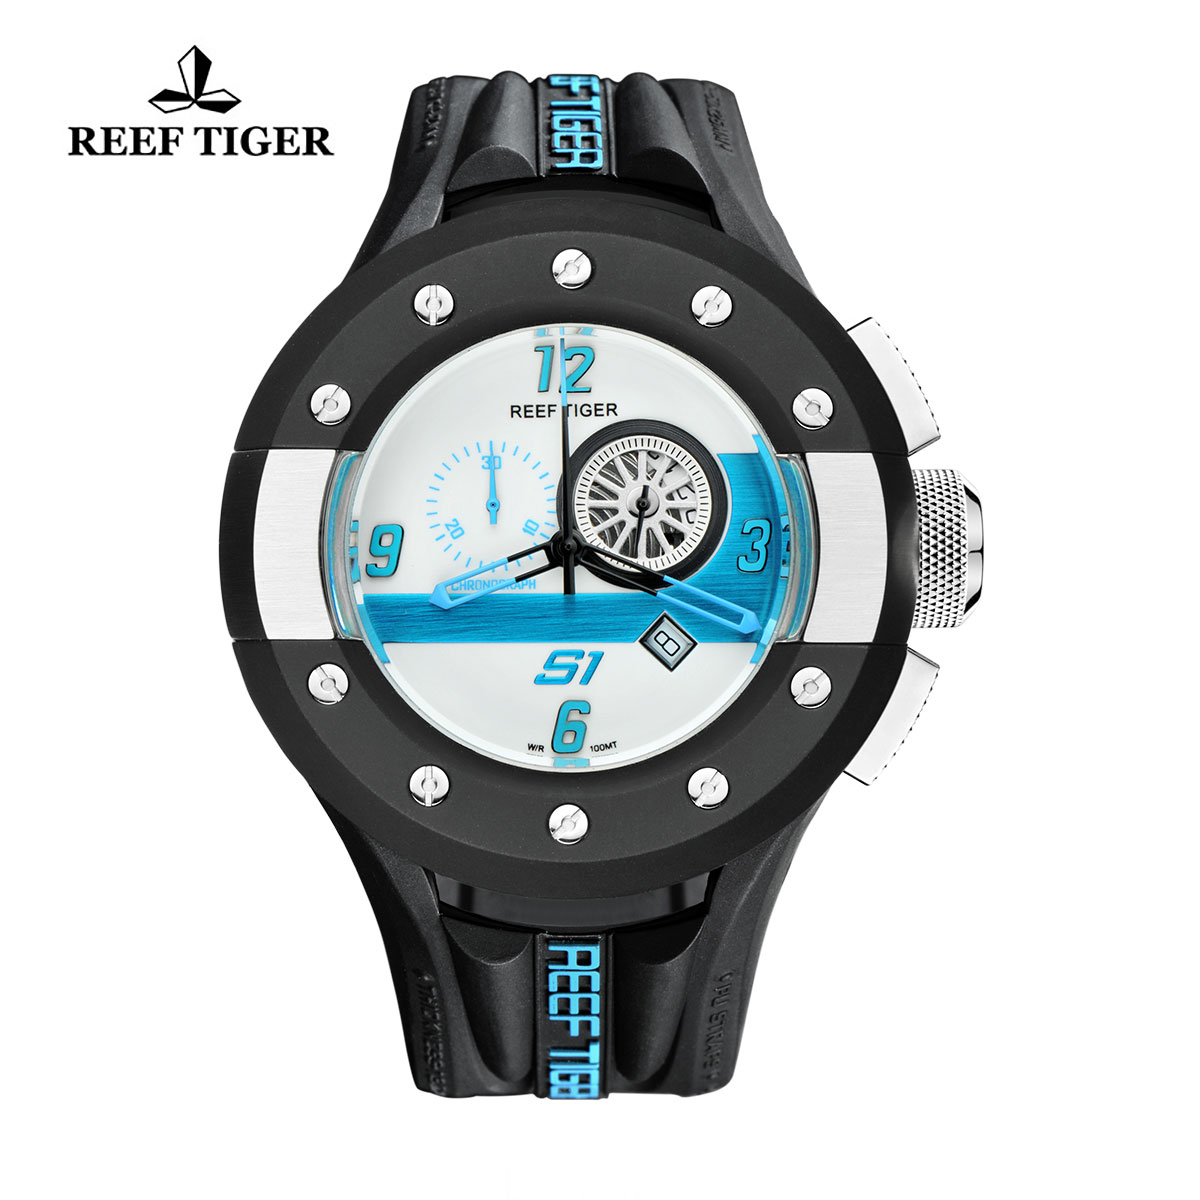 Reef Tiger Rally S1 Casual Watch Stainless Steel Rubber Strap White Dashboard Dial Quartz Watch RGA3027-BWBL